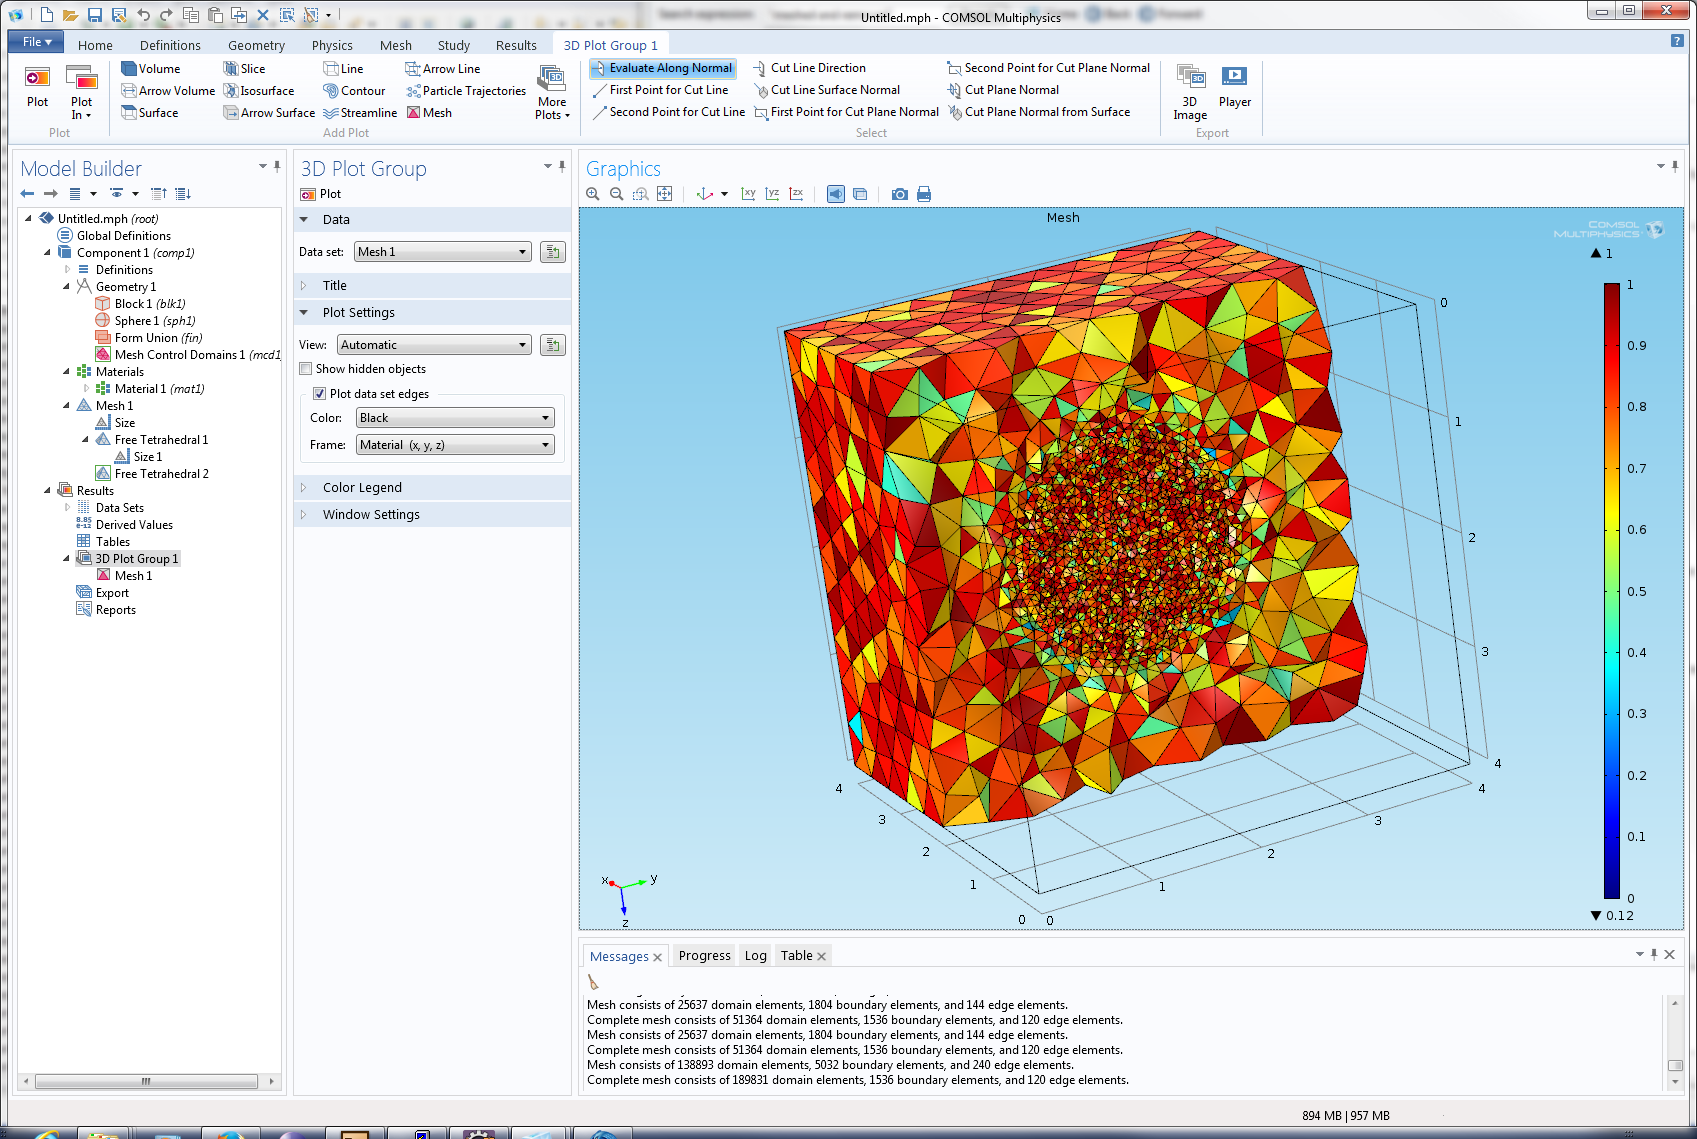 3D Mesh refinement within a domain